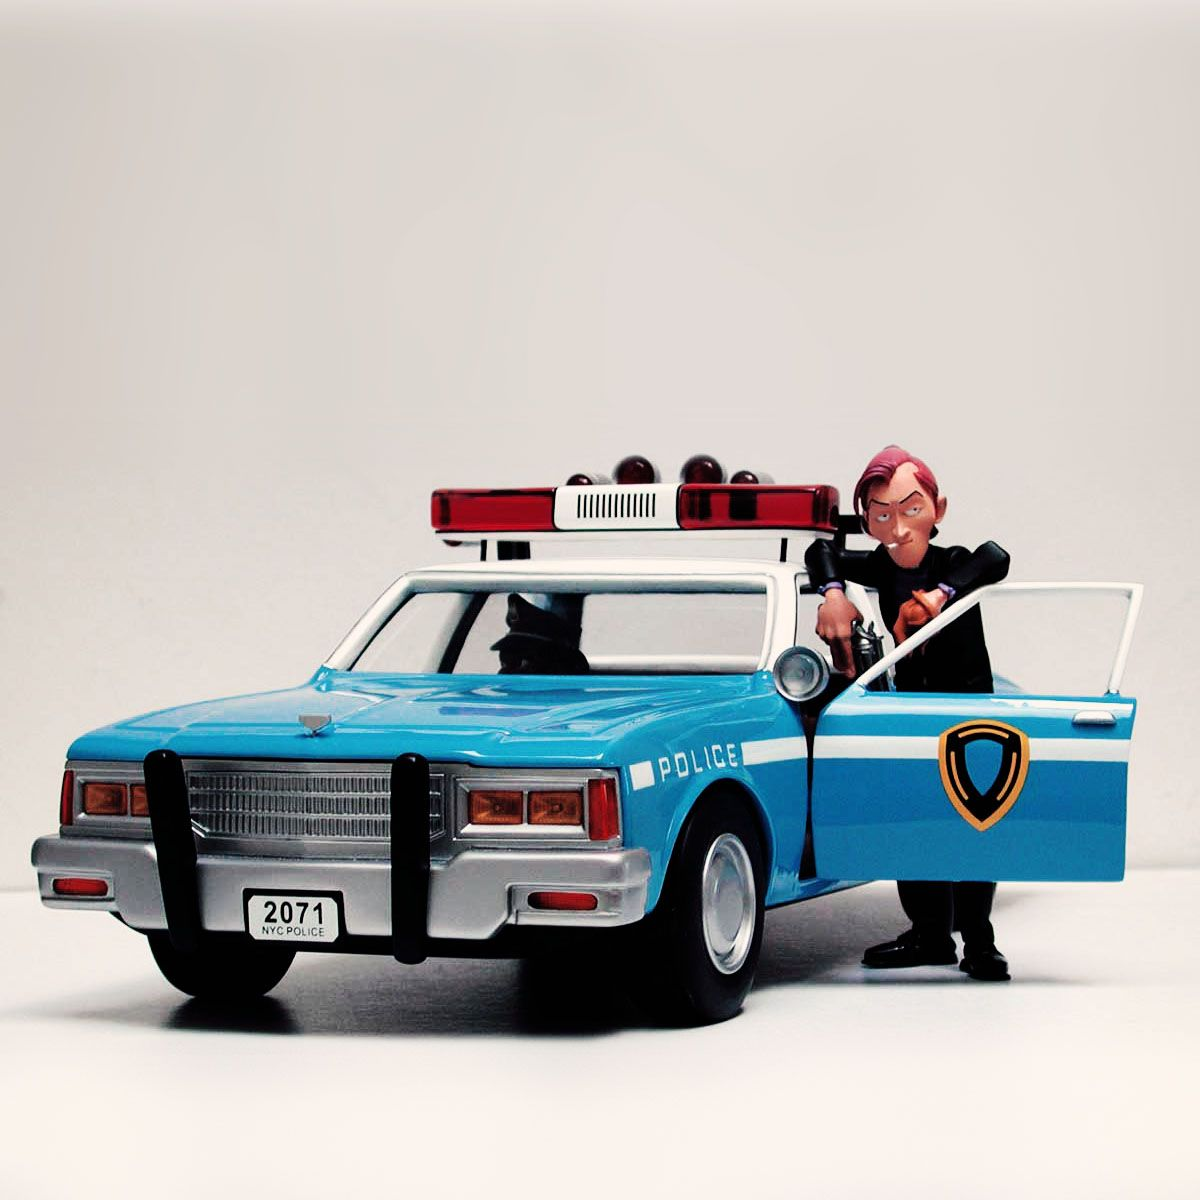 Soda Nypd Chevrolet Caprice Soda Is A Franco Belgian Comics Series By Tome Writing And Bruno Gazzotti Made Of Resin Chevrolet Caprice Mother Health Nypd